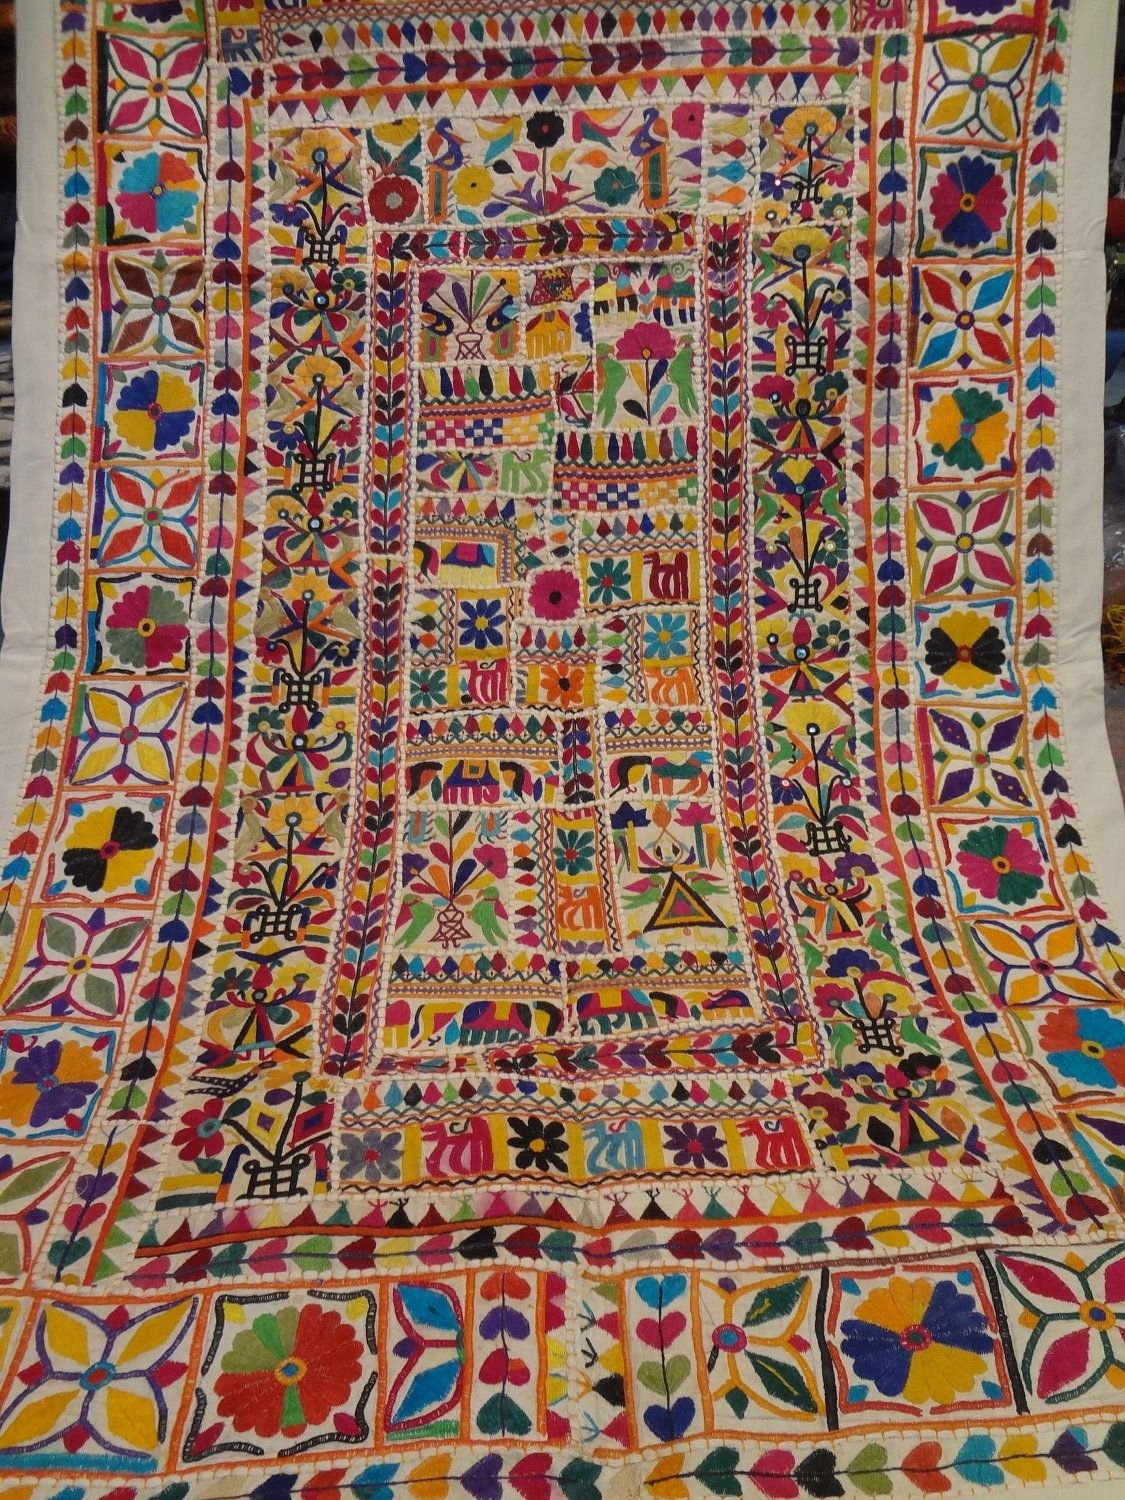 Handmade Old Patchwork Wall Hanging/home Tapestry Made From Old Pertaining To Recent Indian Fabric Art Wall Hangings (View 9 of 15)